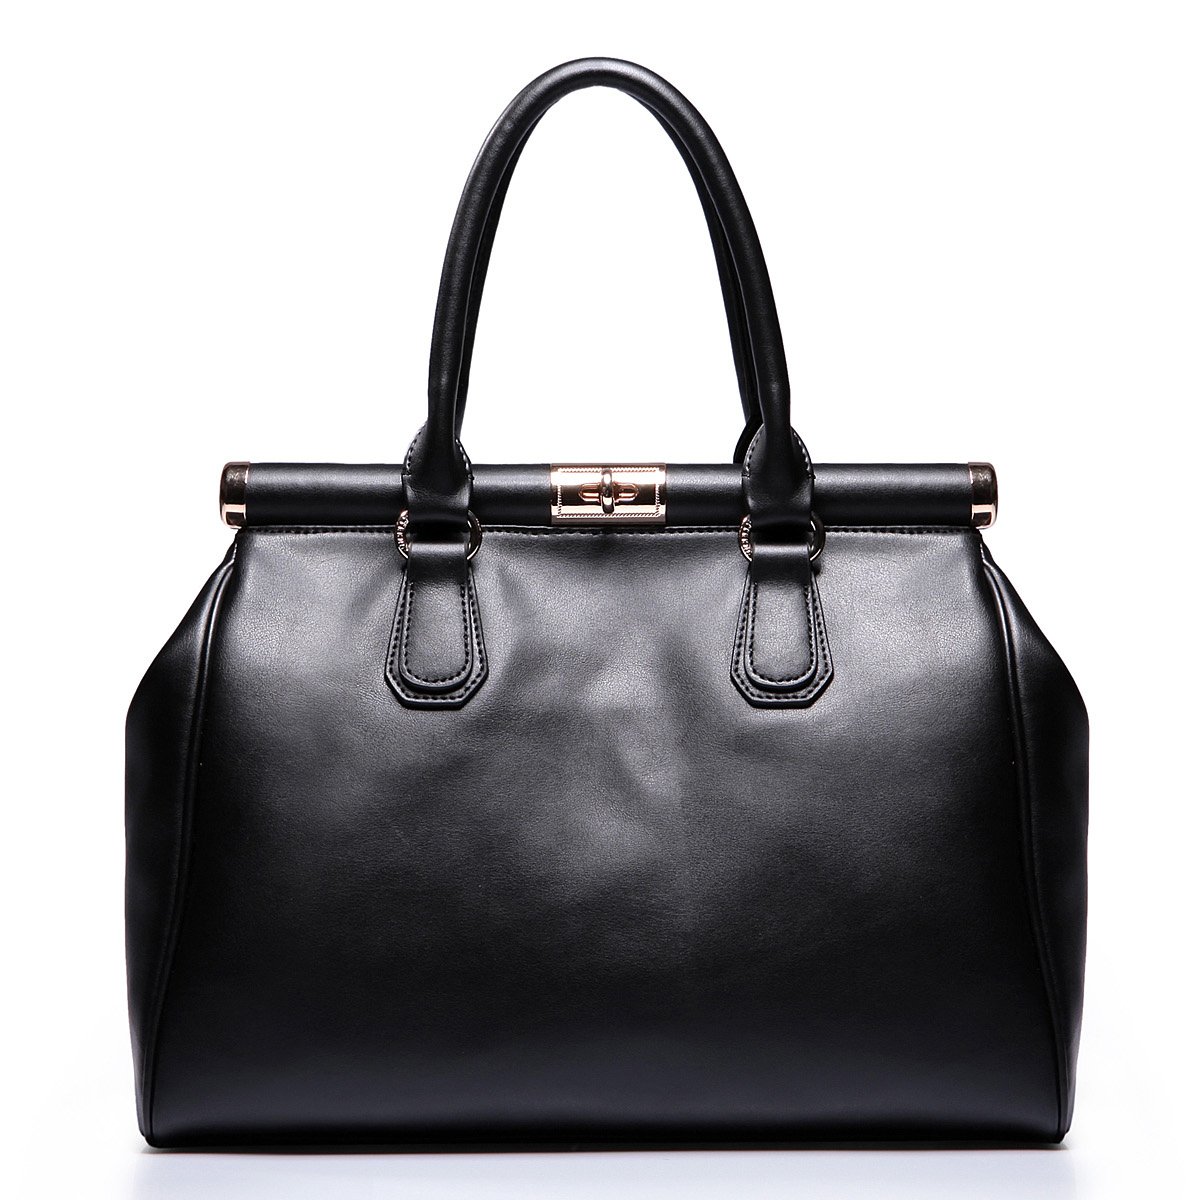 Find great deals on eBay for black handbag. Shop with confidence.